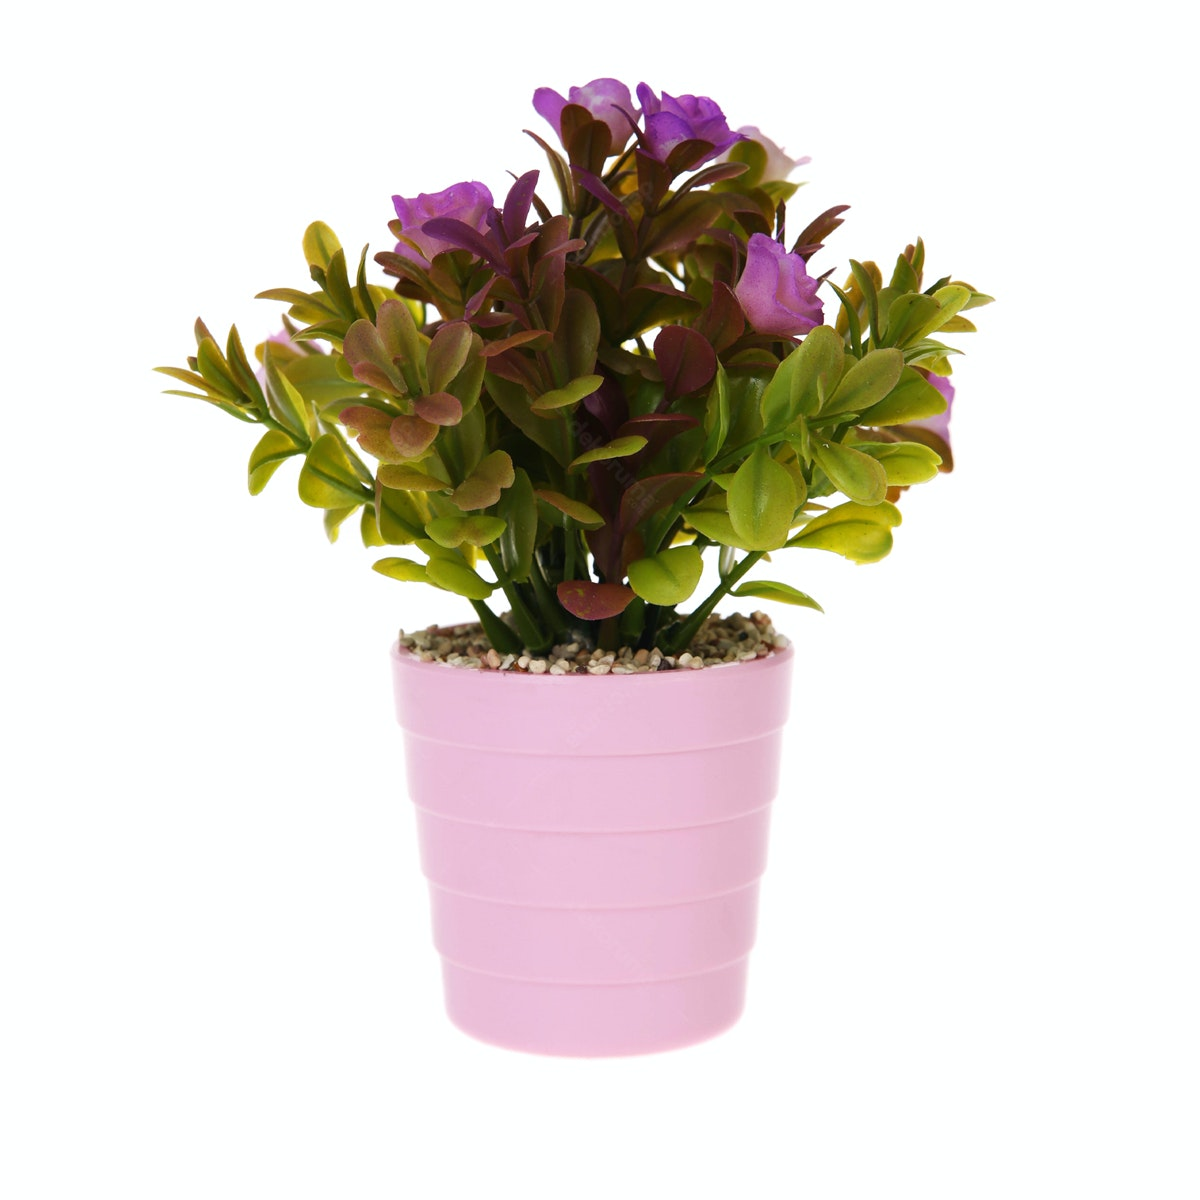 Kokoji Florist Flower Arrangements KKJ-127 Purple